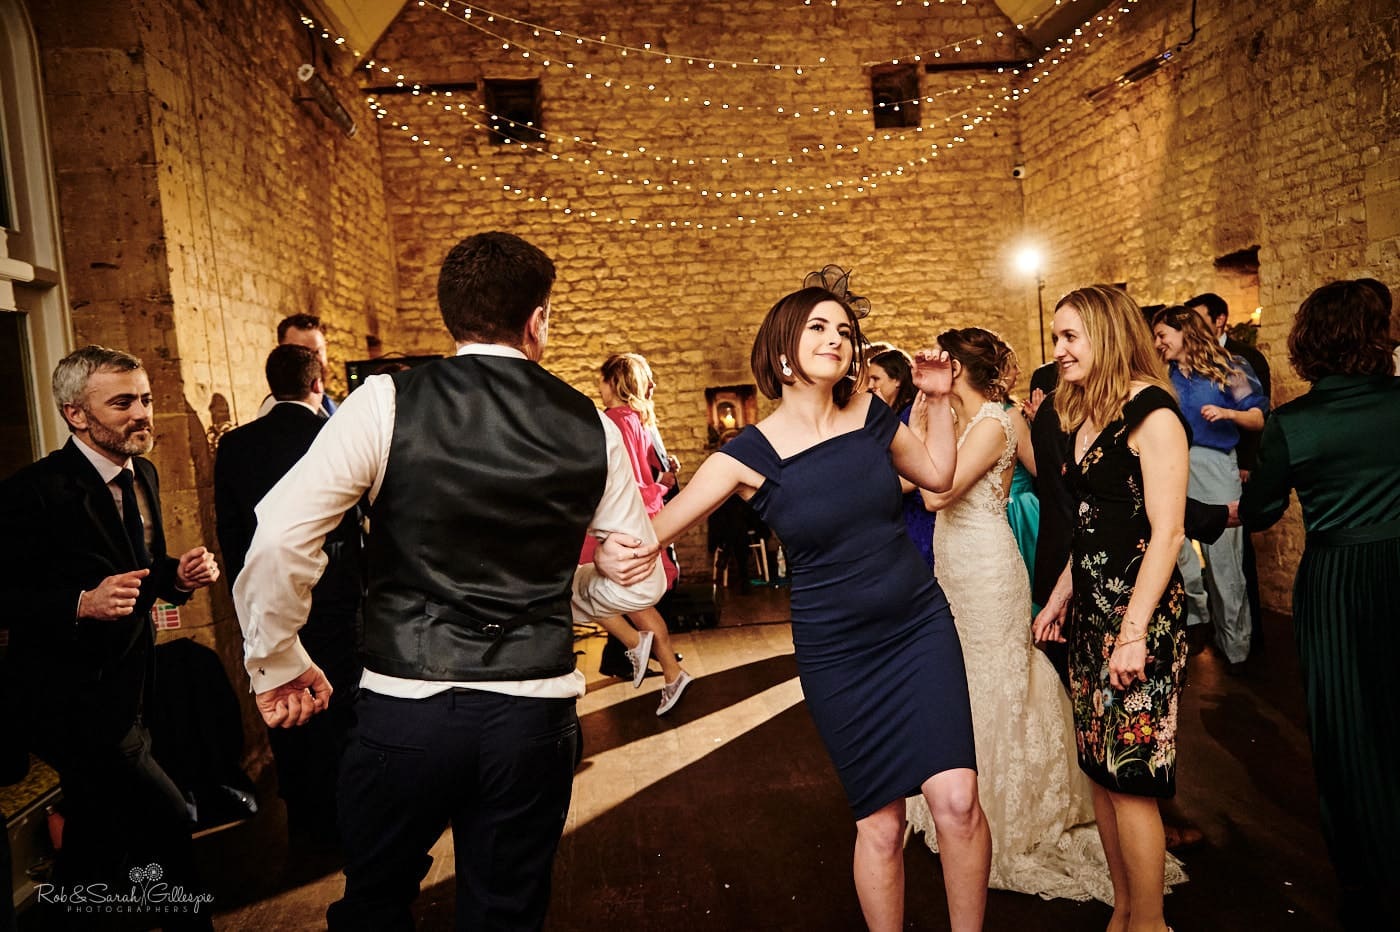 Dancing at Lapstone Barn wedding